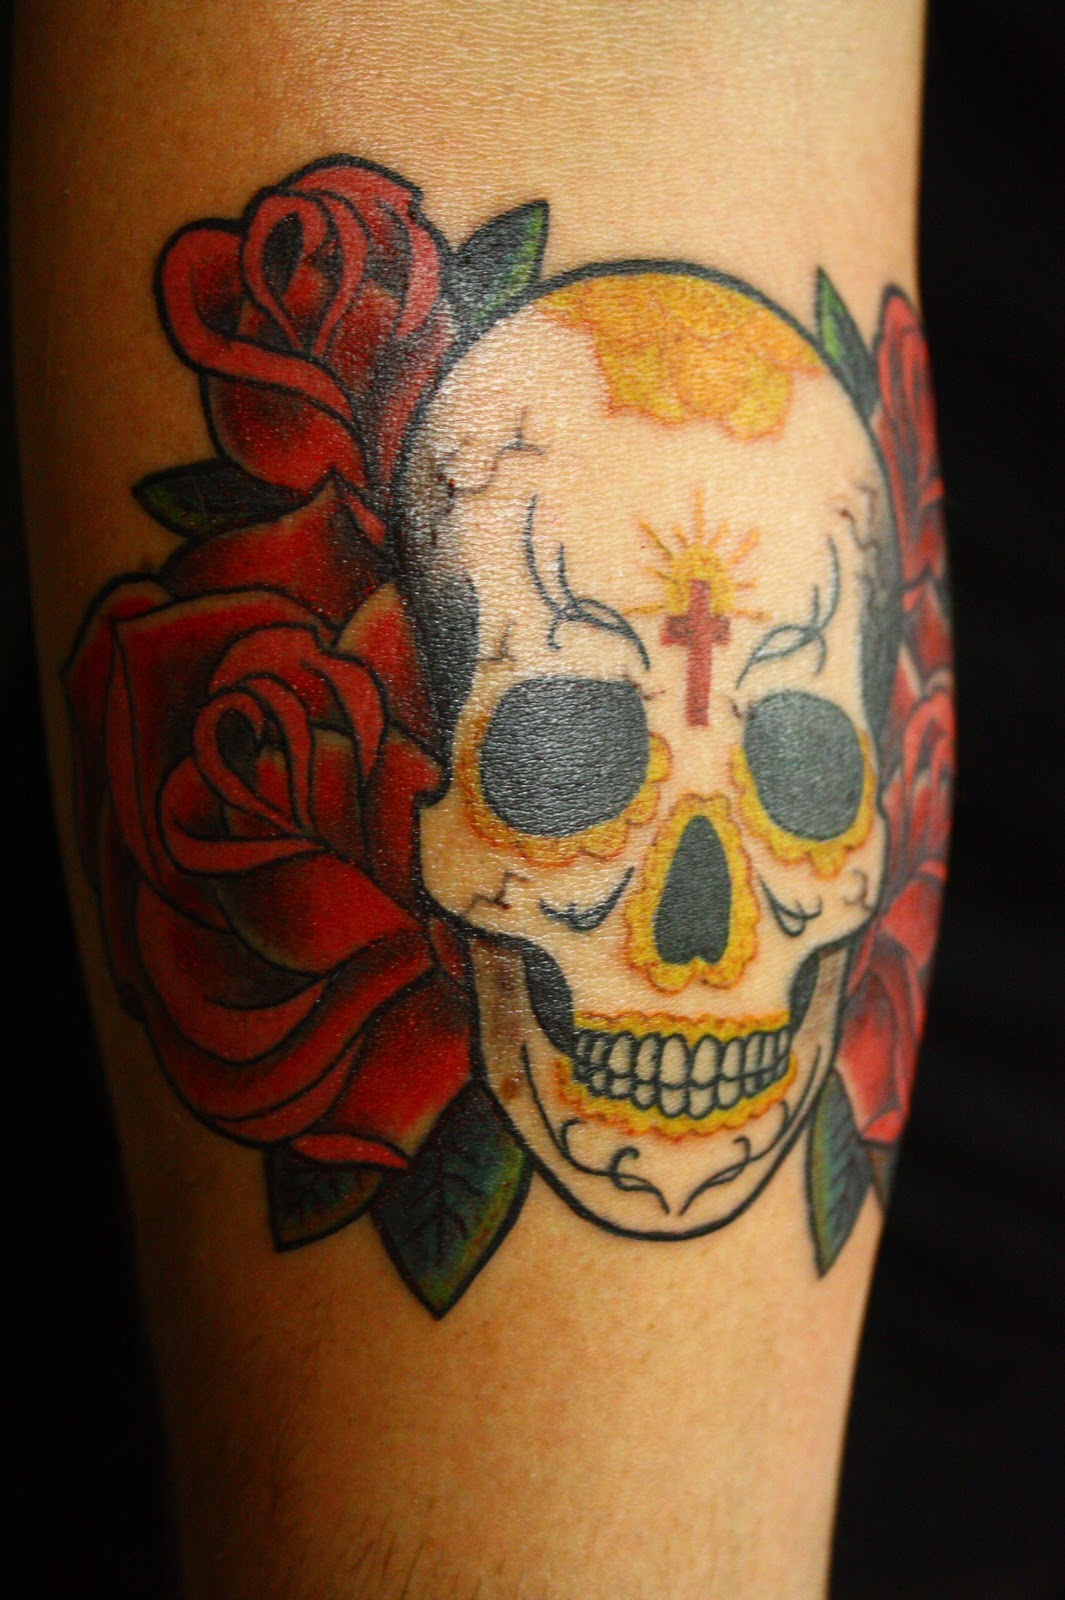 New Tattoo: Sugar Skull Lady Tattoo